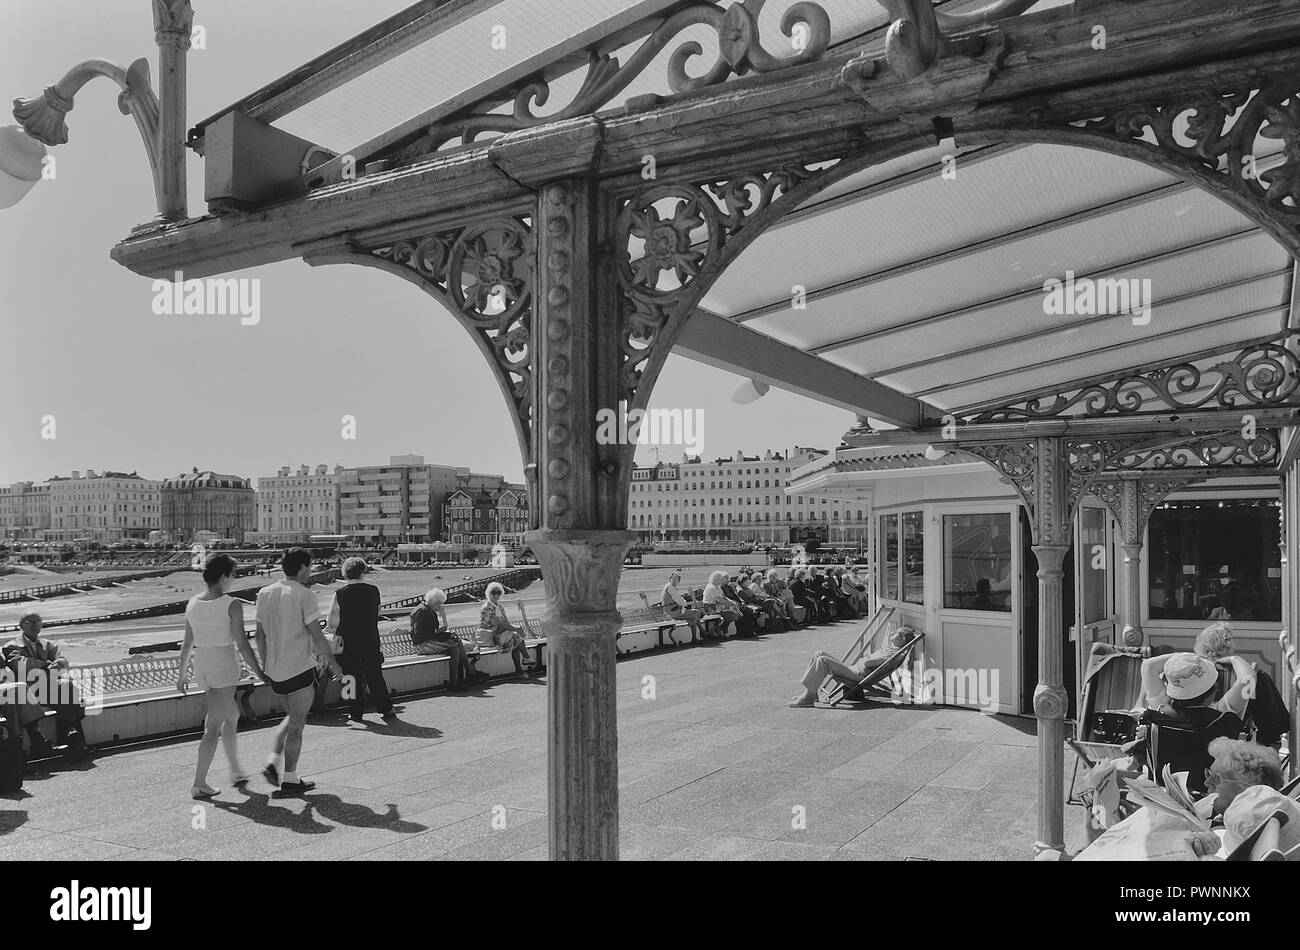 Eastbourne pier, East Sussex, England, UK. Circa 1980's - Stock Image